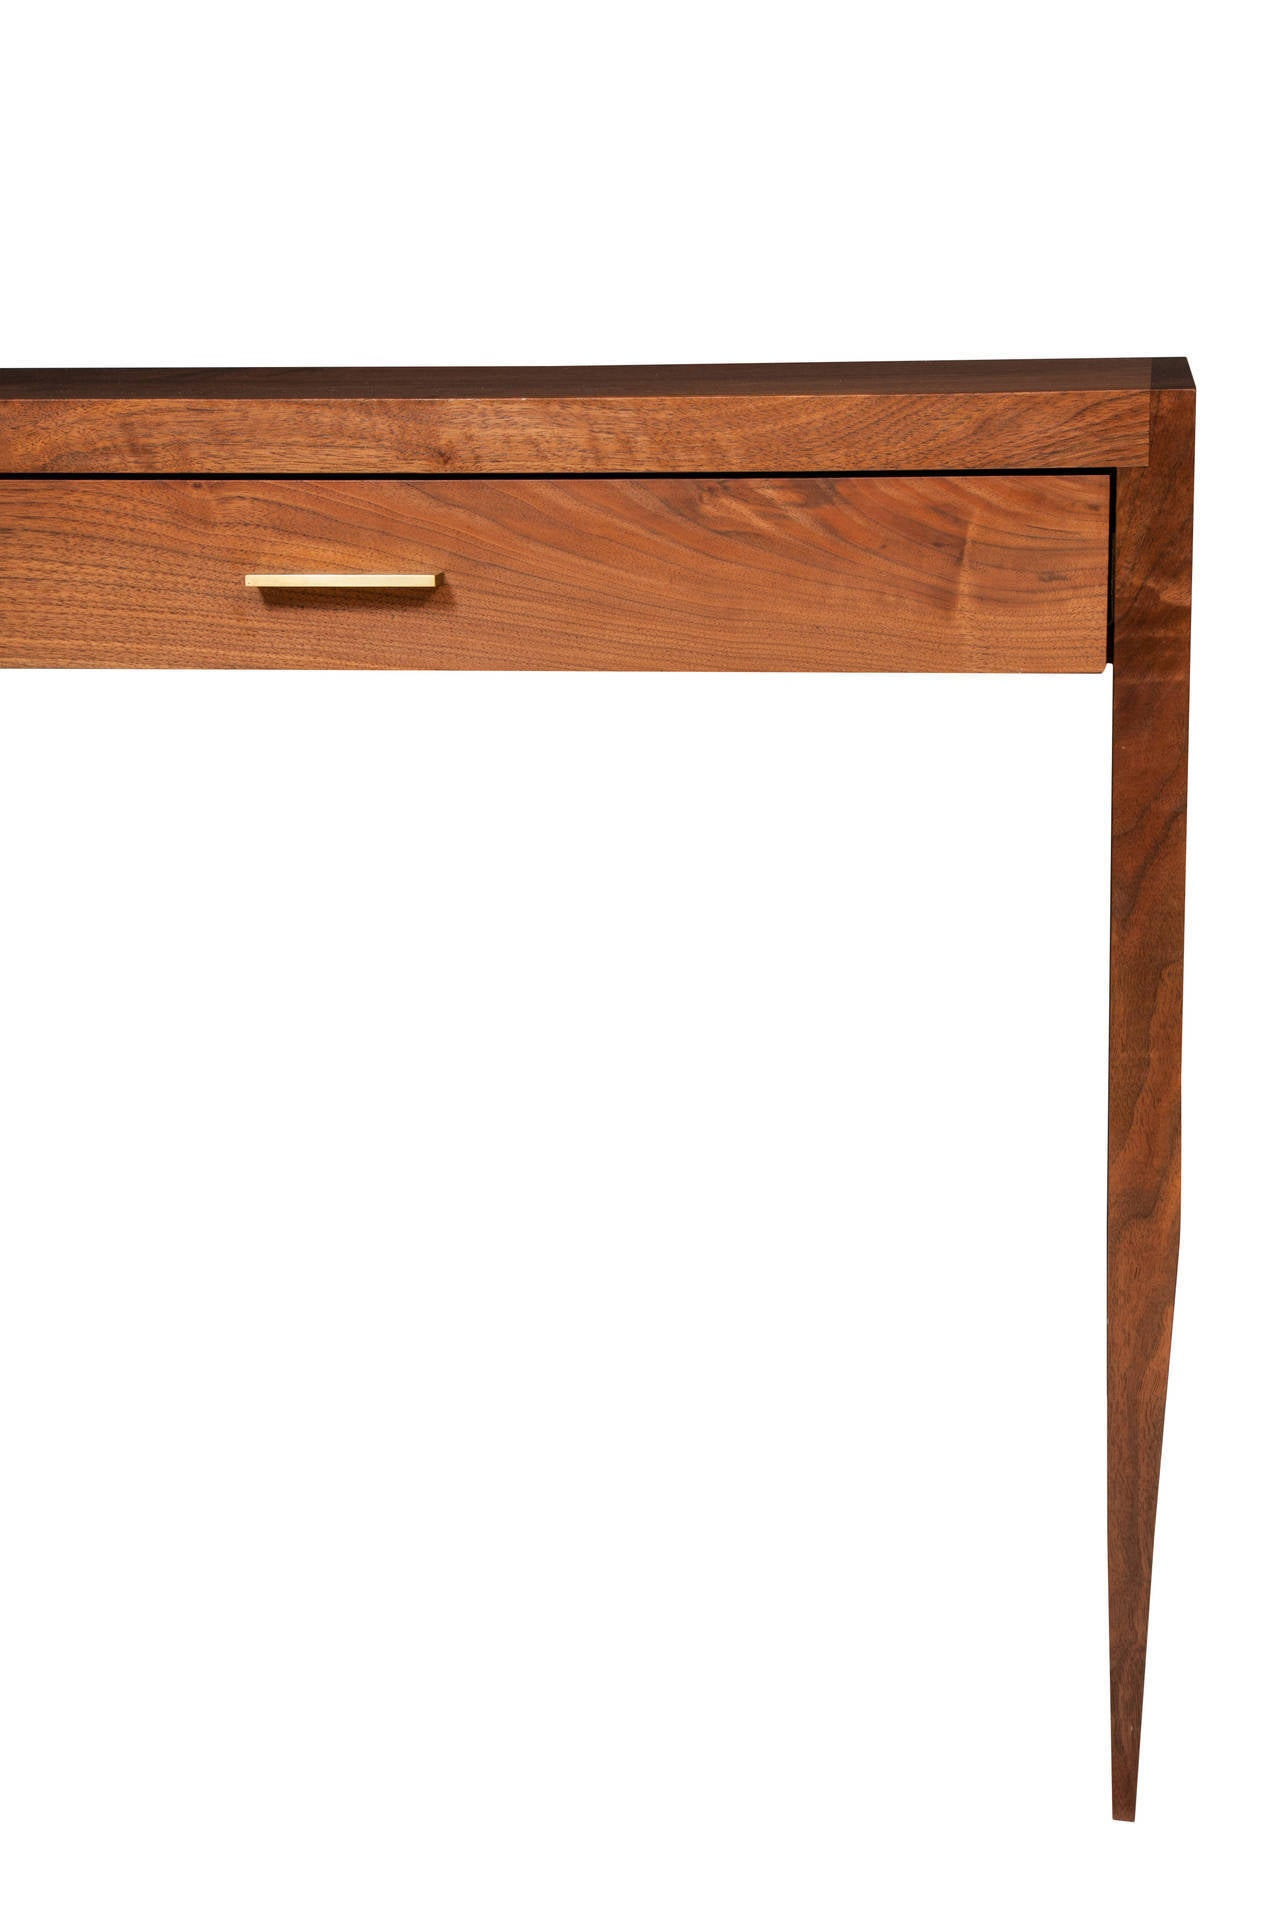 American Stillmade Solid Walnut Two-Drawer Tapered Console Table For Sale